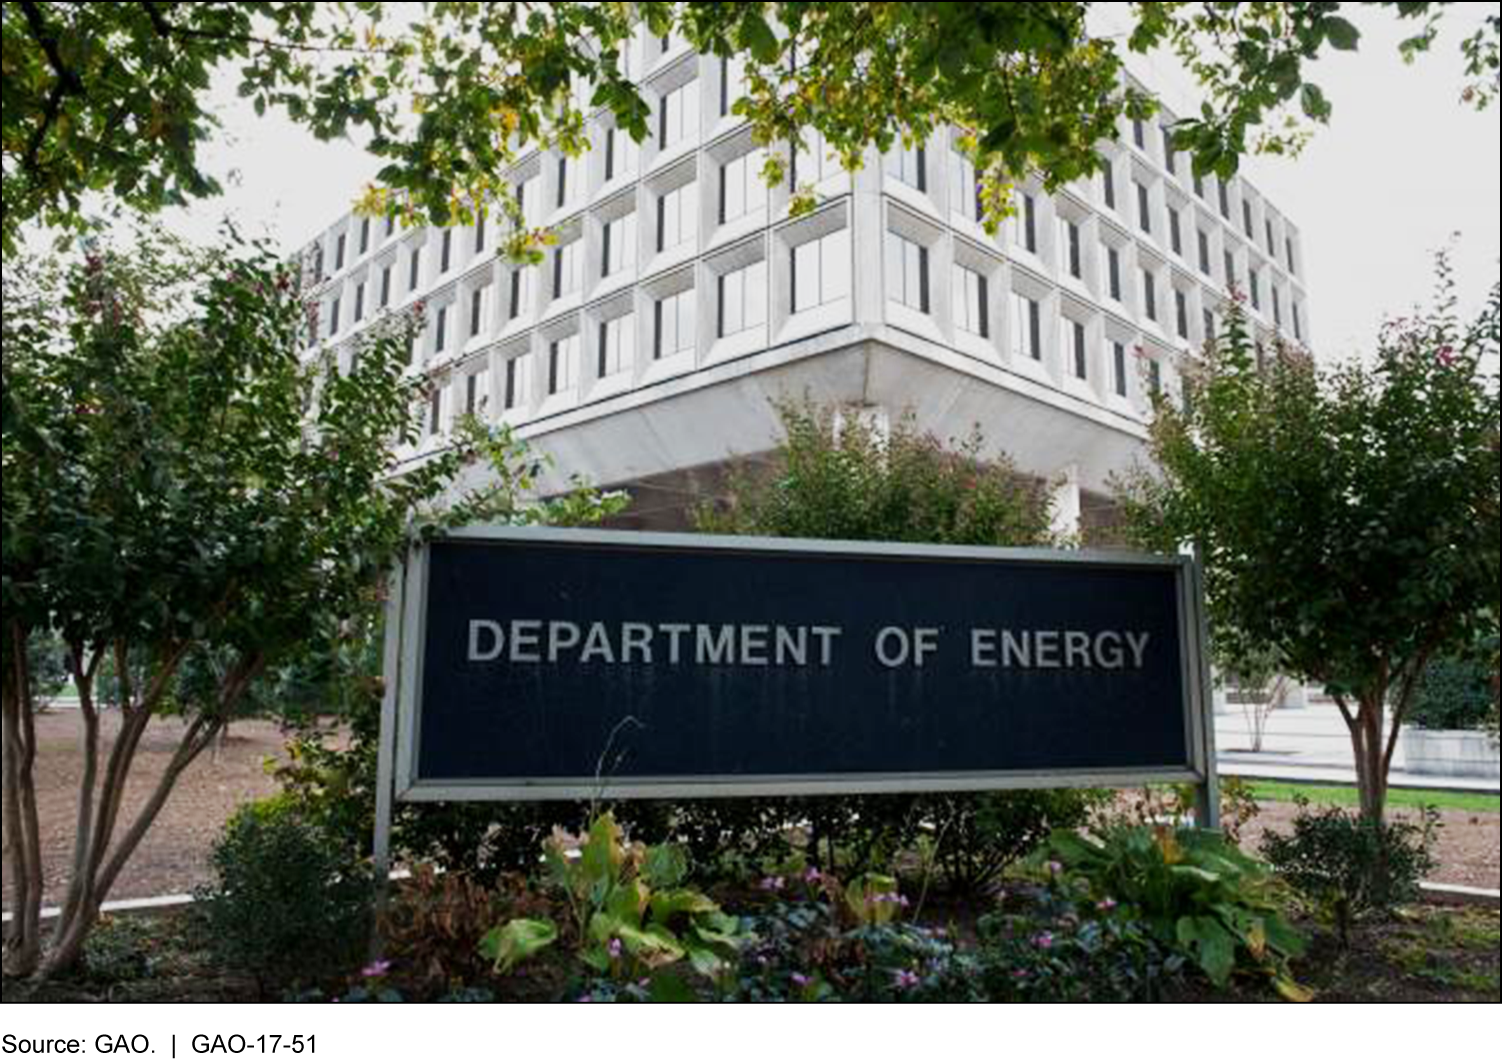 Picture of the Department of Energy building.